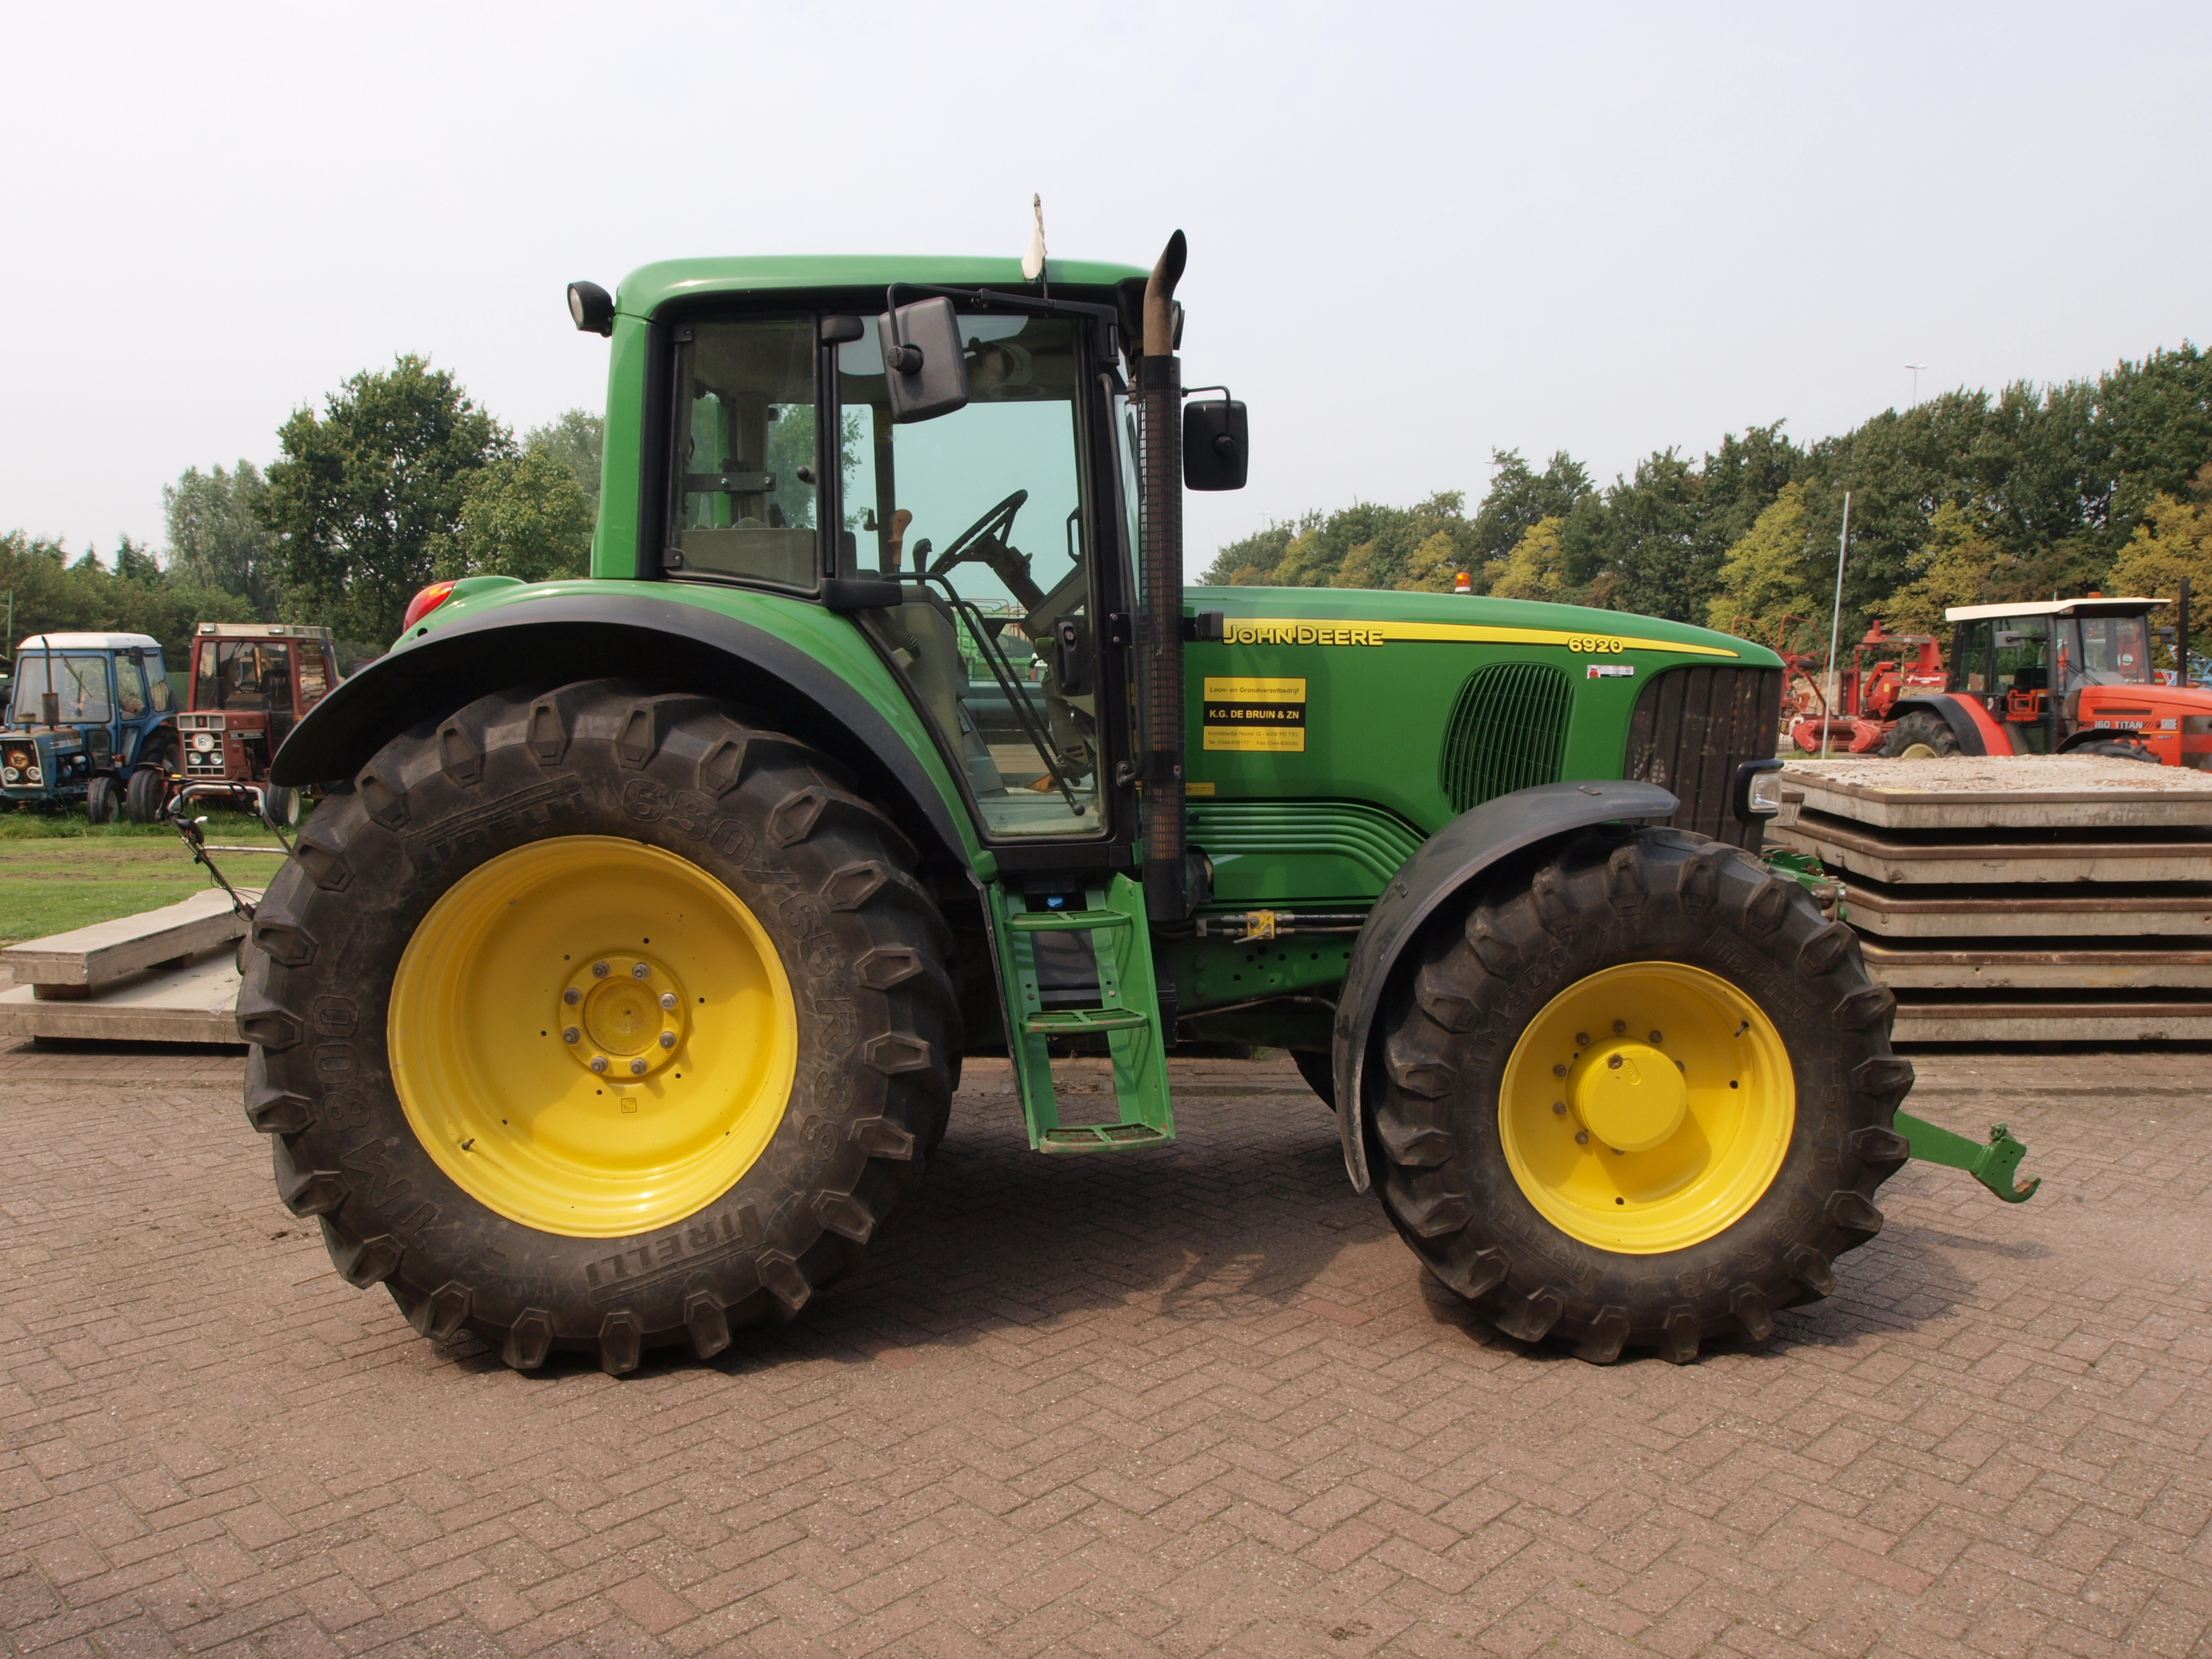 Used Farm Machinery - For Sale - Buy Used Farm Machinery